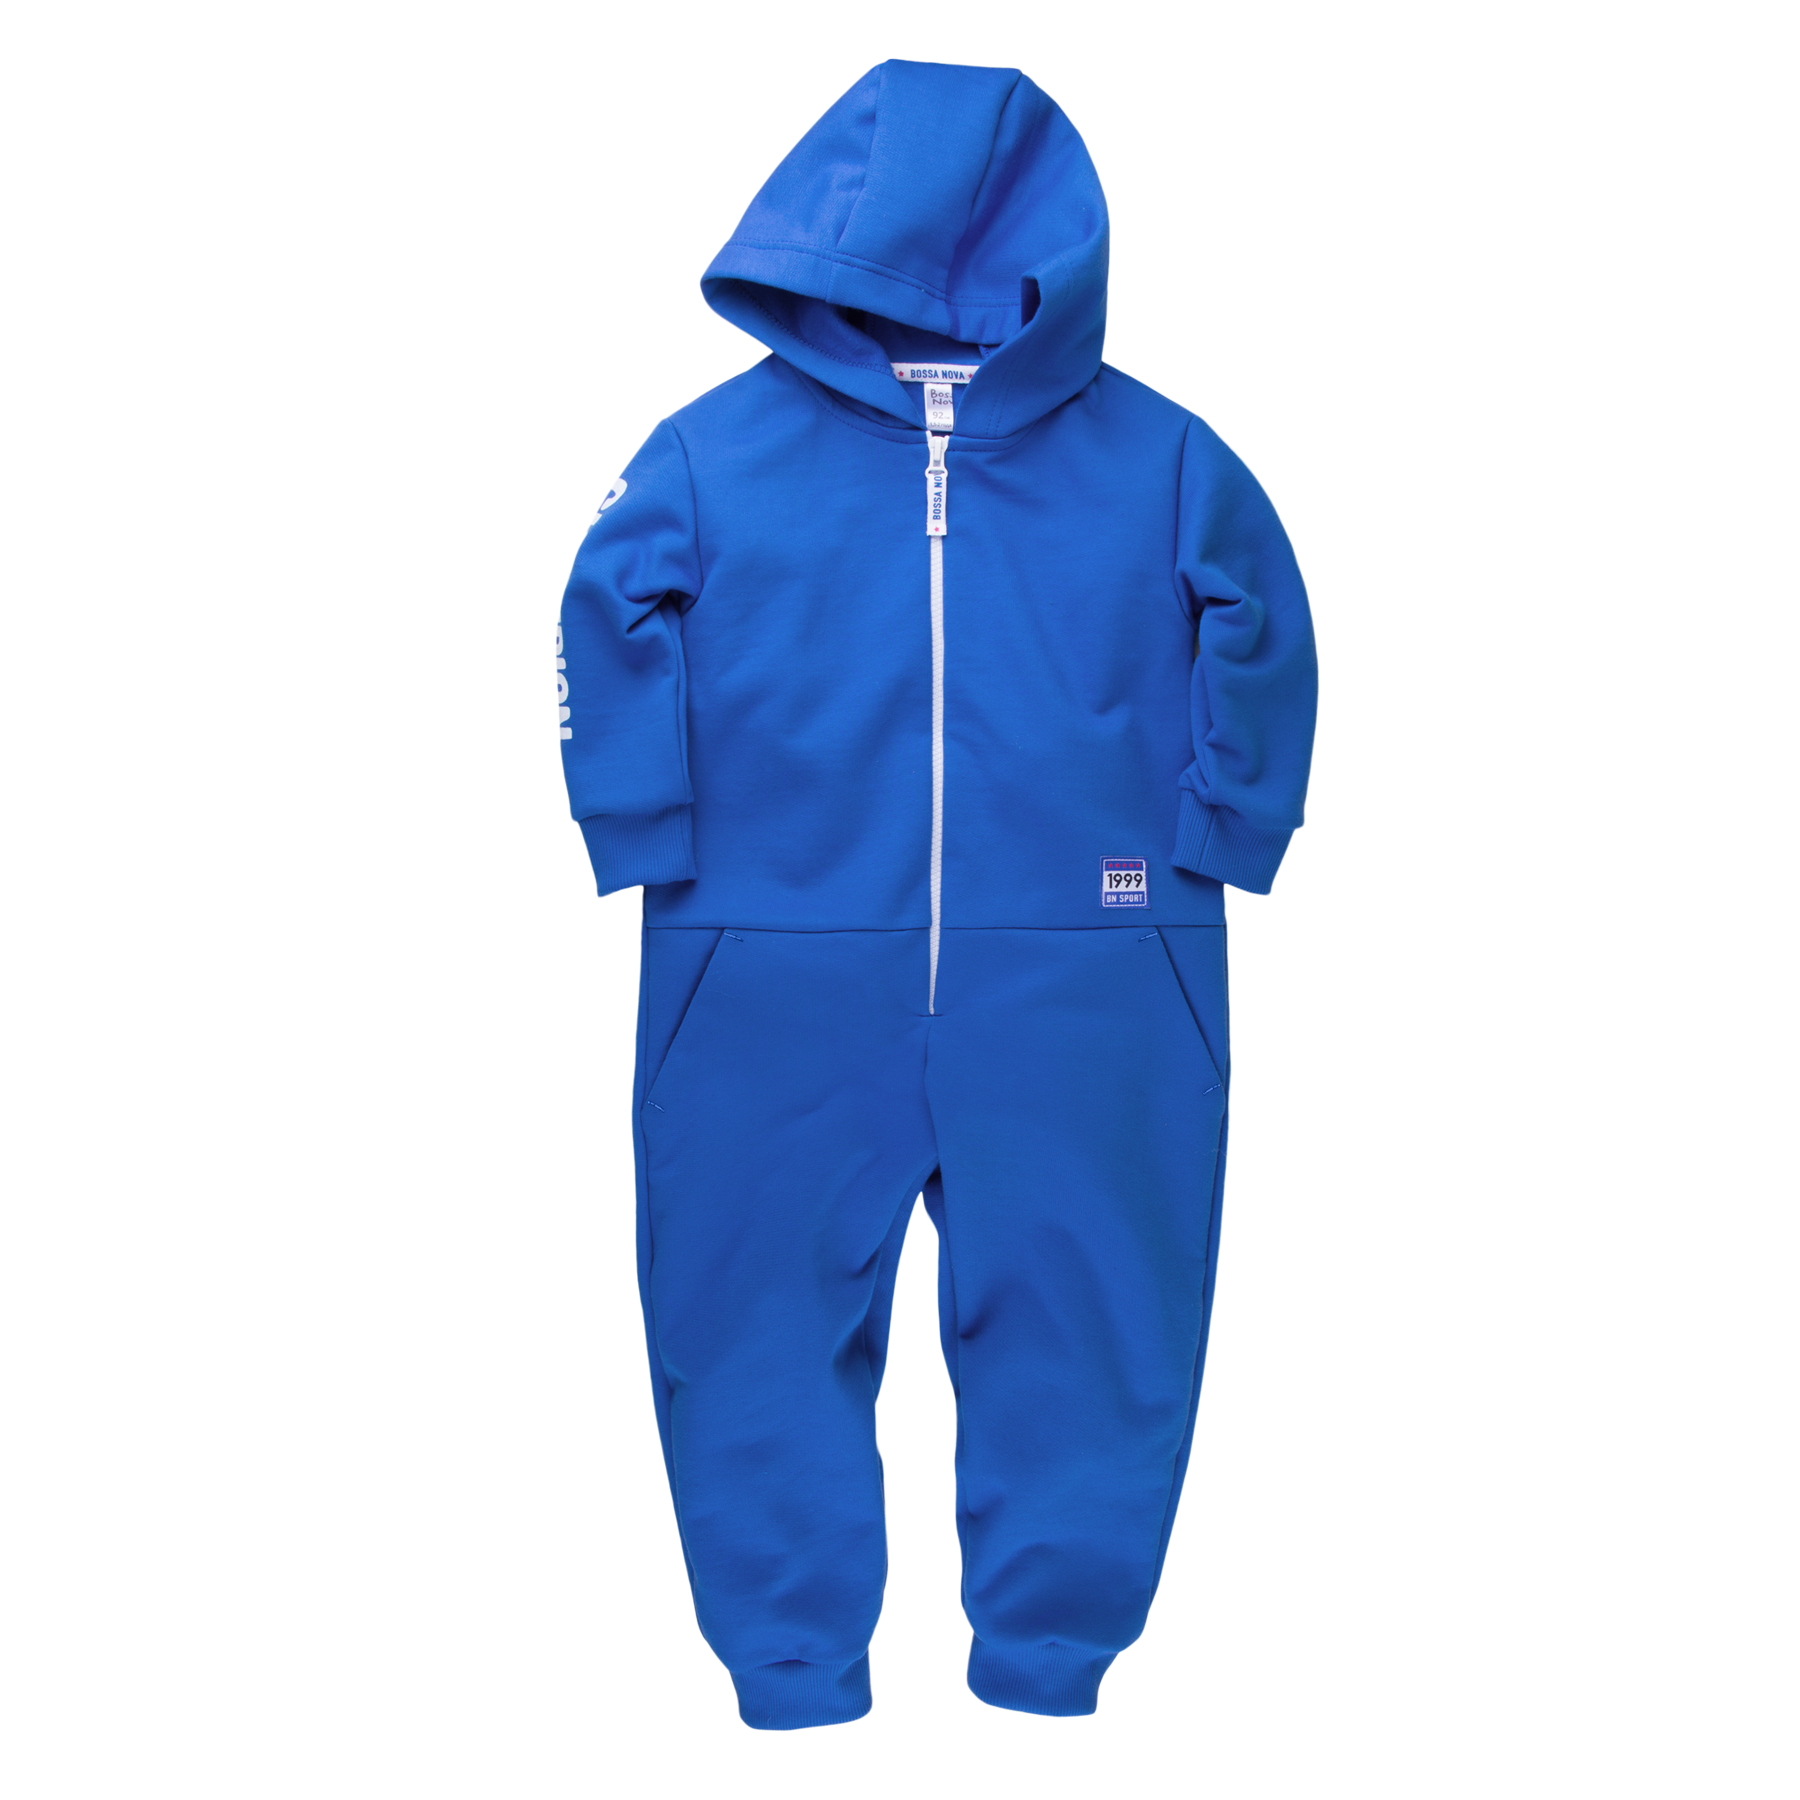 Jumpsuit with hoodie for boy BOSSA NOVA 510b-462e kid clothes цена